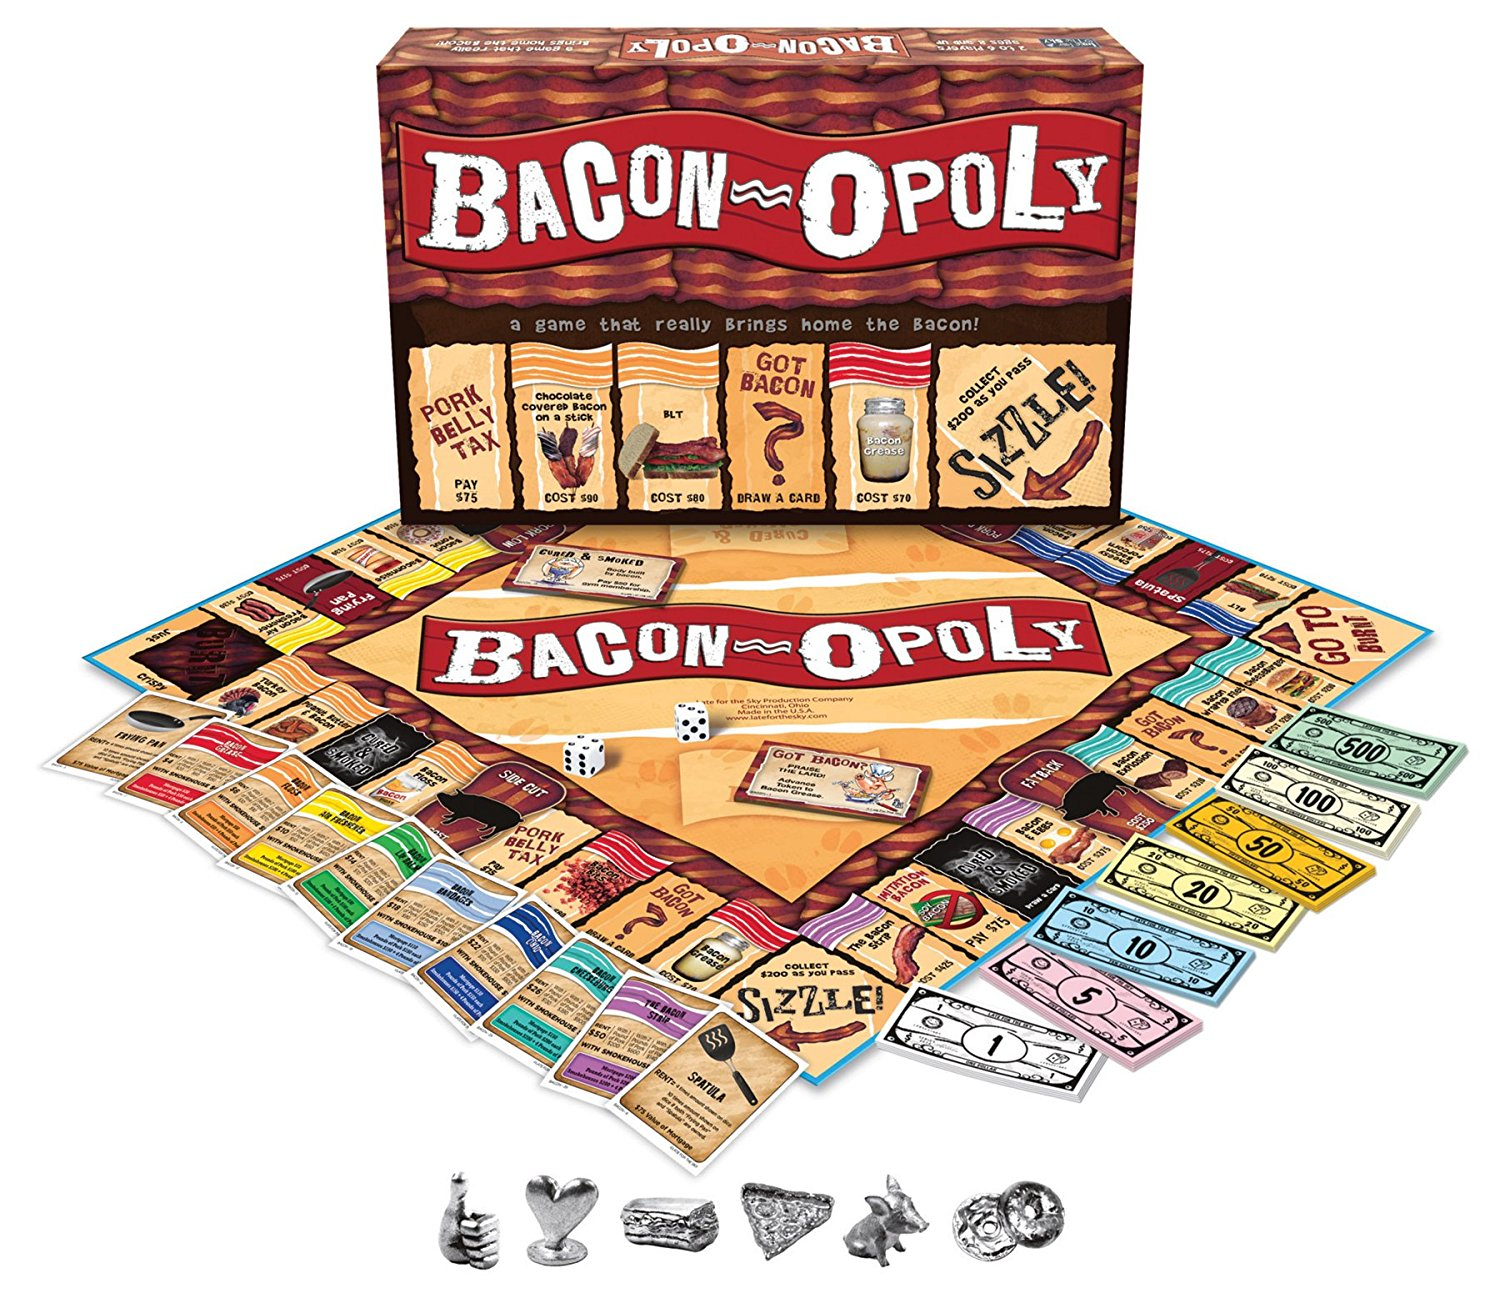 Bacon monopoly for 2-6 bacon lovers